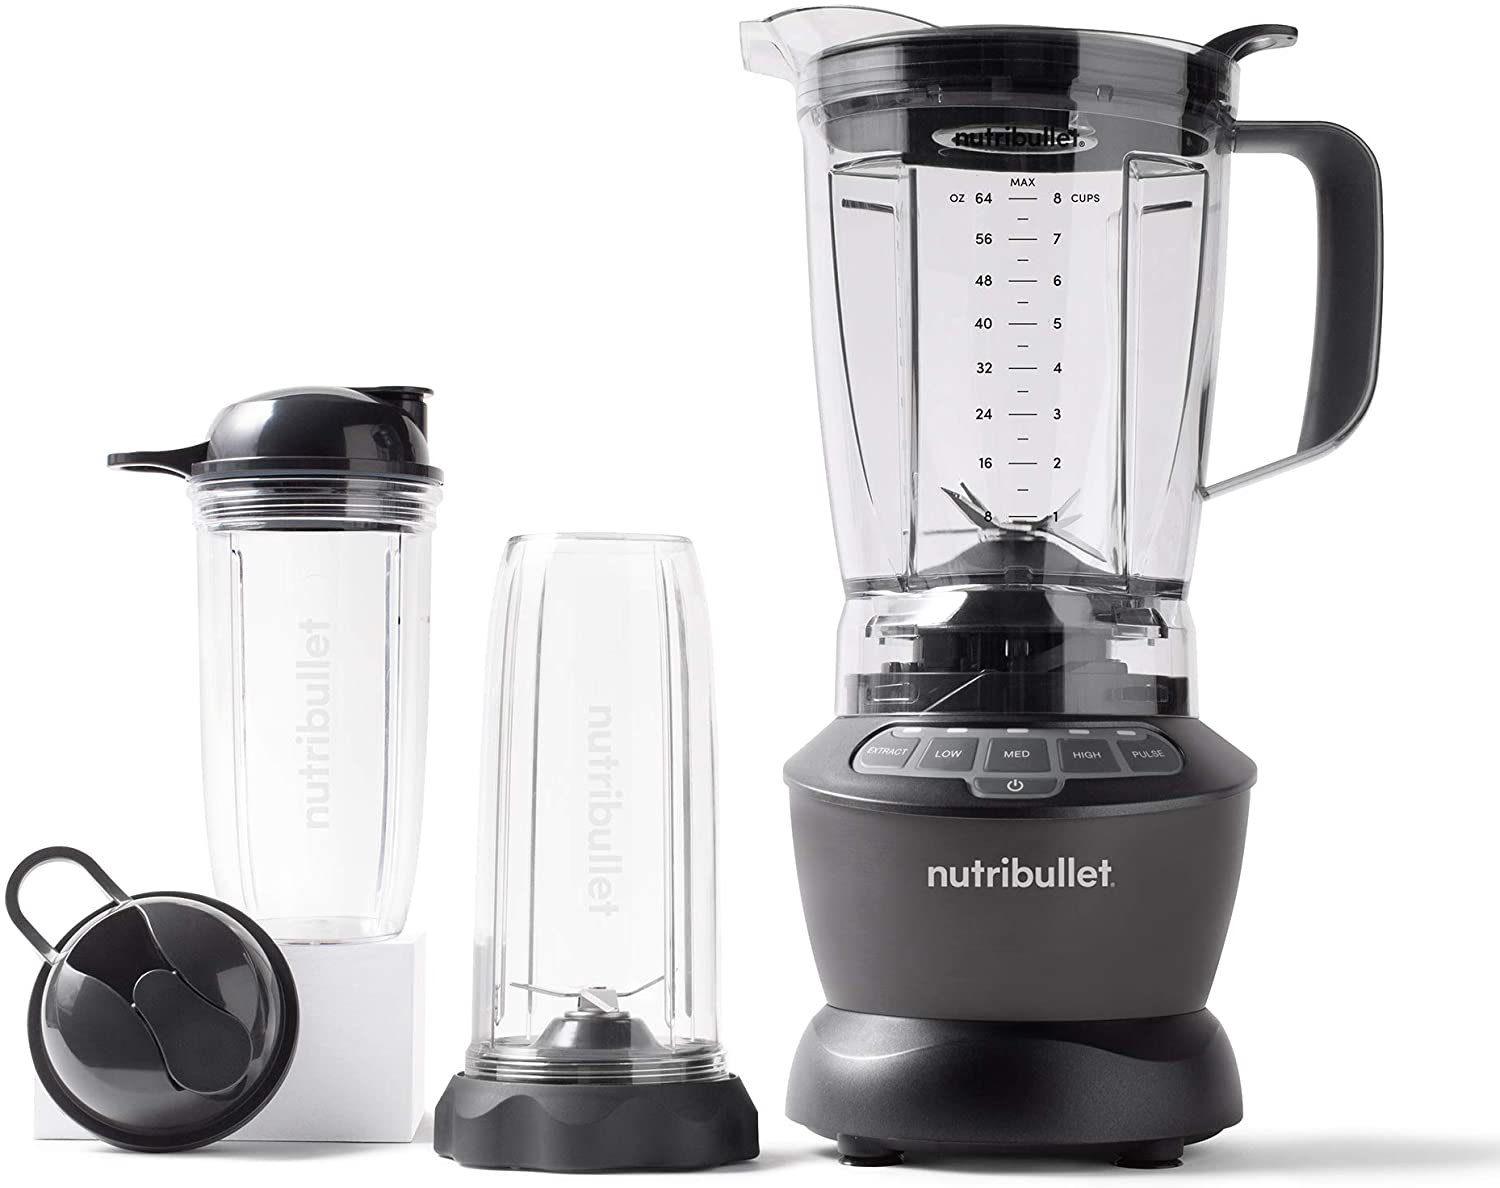 NutriBullet blender with single-serve attachment and travel cup